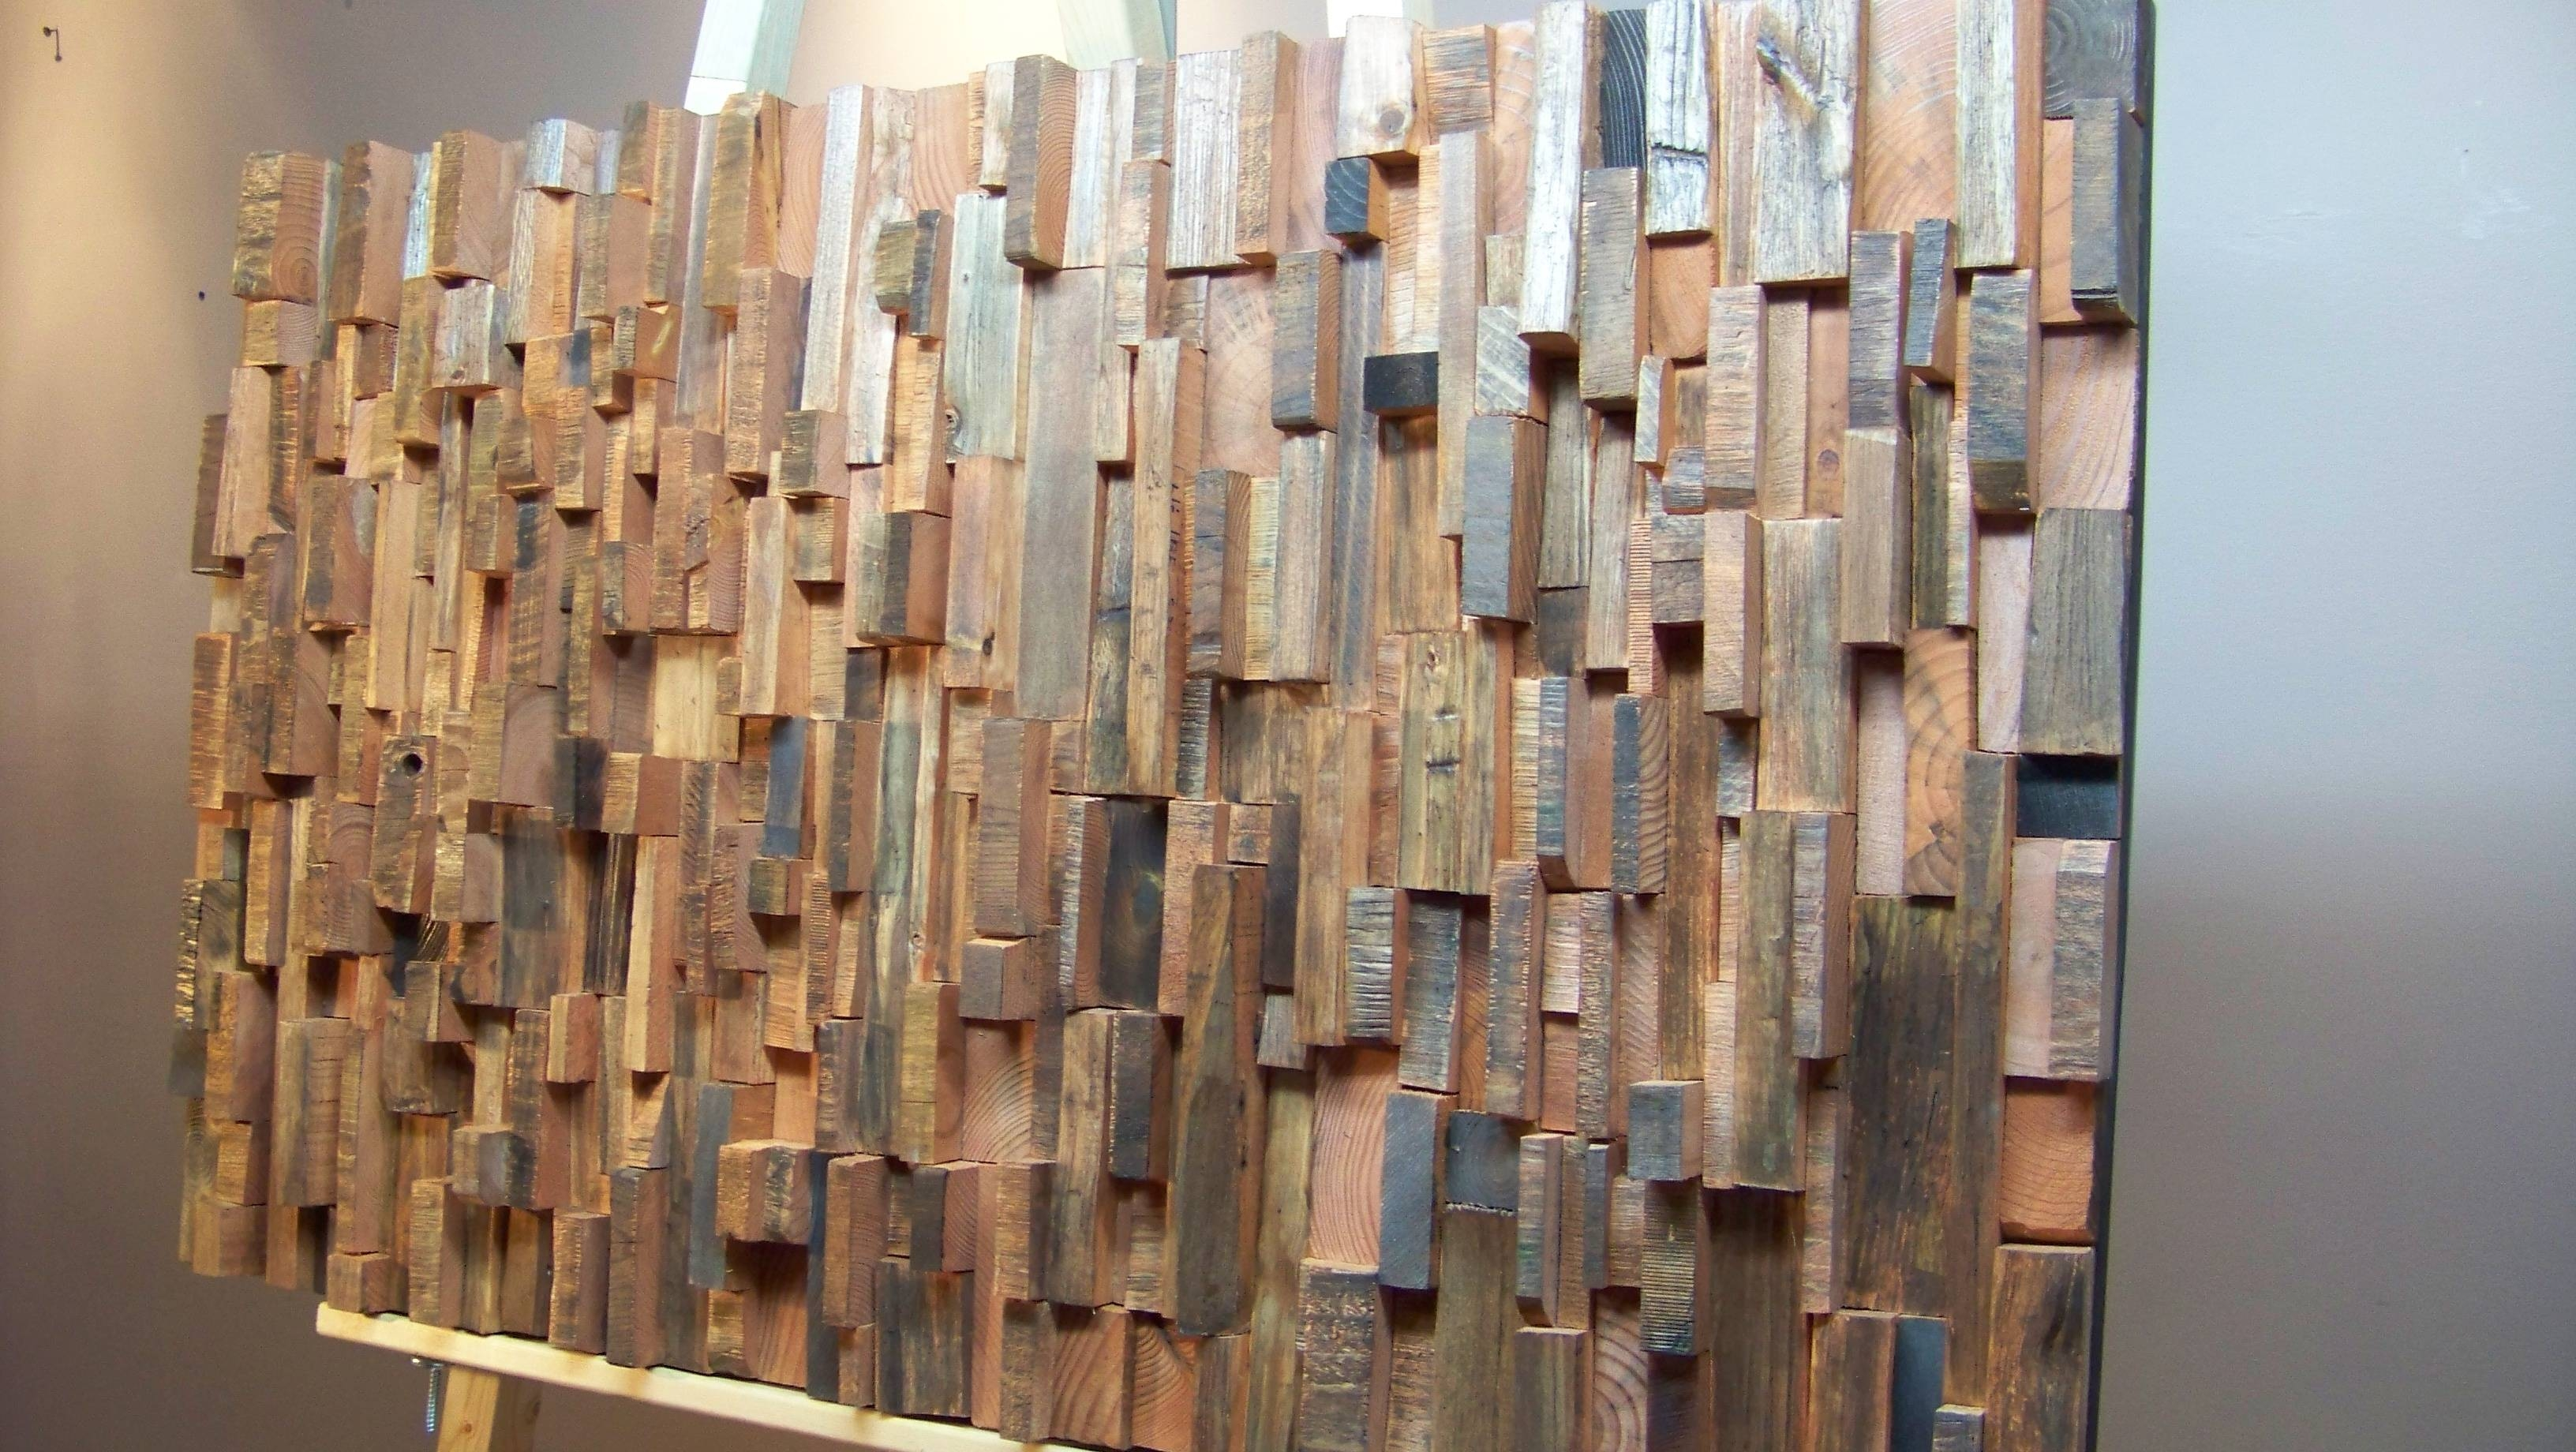 Wood Panel Wall Art Some Decor Reviews – Best House Design Throughout Recent Wood Panel Wall Art (View 17 of 20)